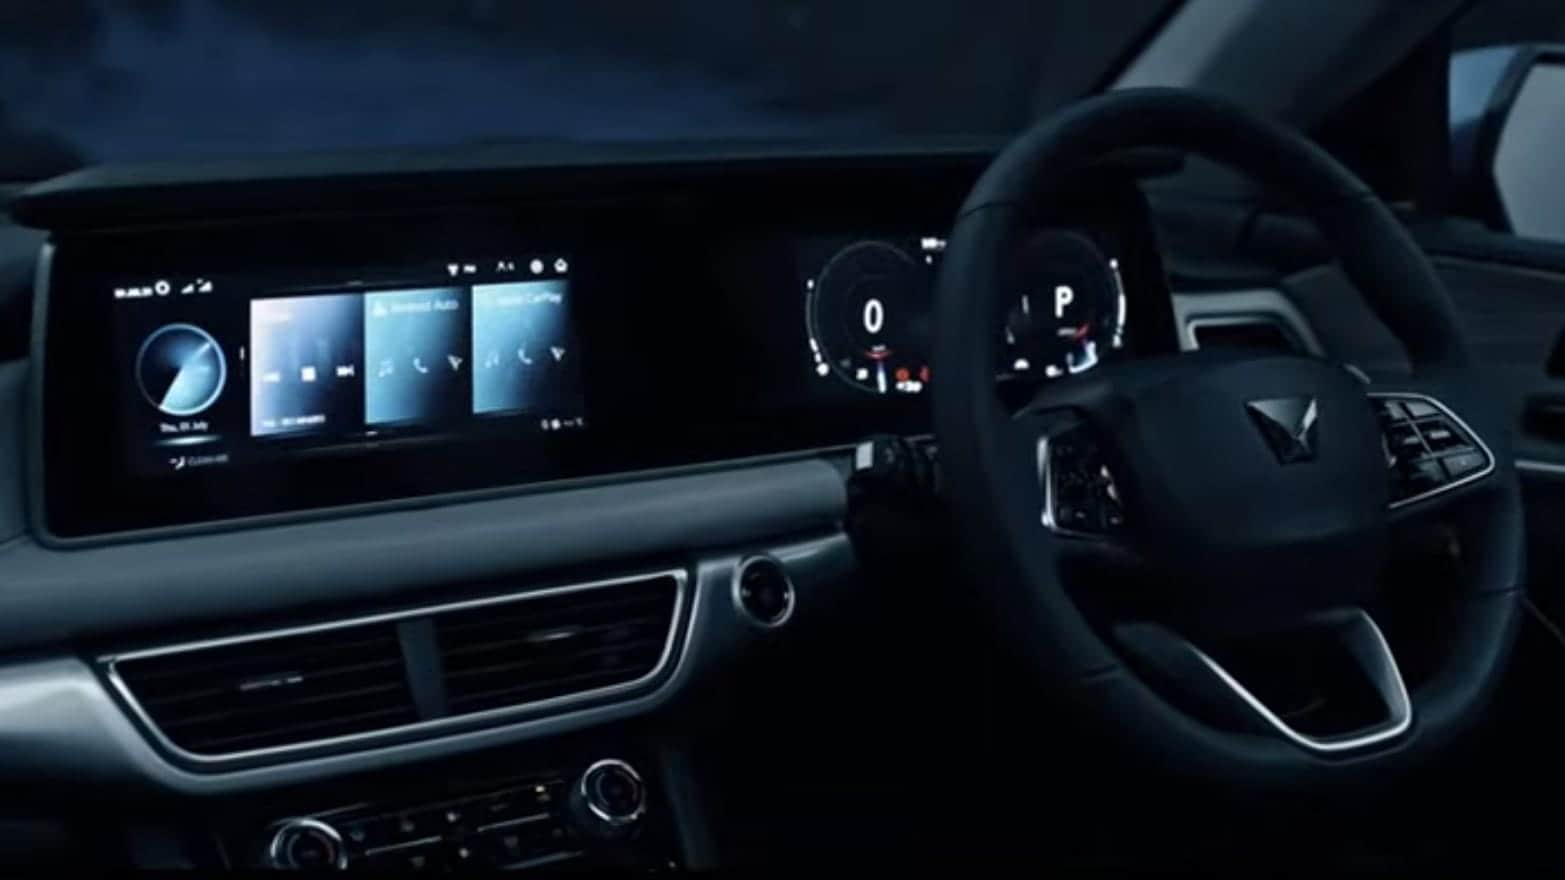 Mahindra XUV700 has a loaded cabin with 10.25-inch screens, a massive and best-in-segment sunroof, 12-speaker Sony system with 3D sound and AdrenoX interface which allows for compatibility with Alexa Voice.